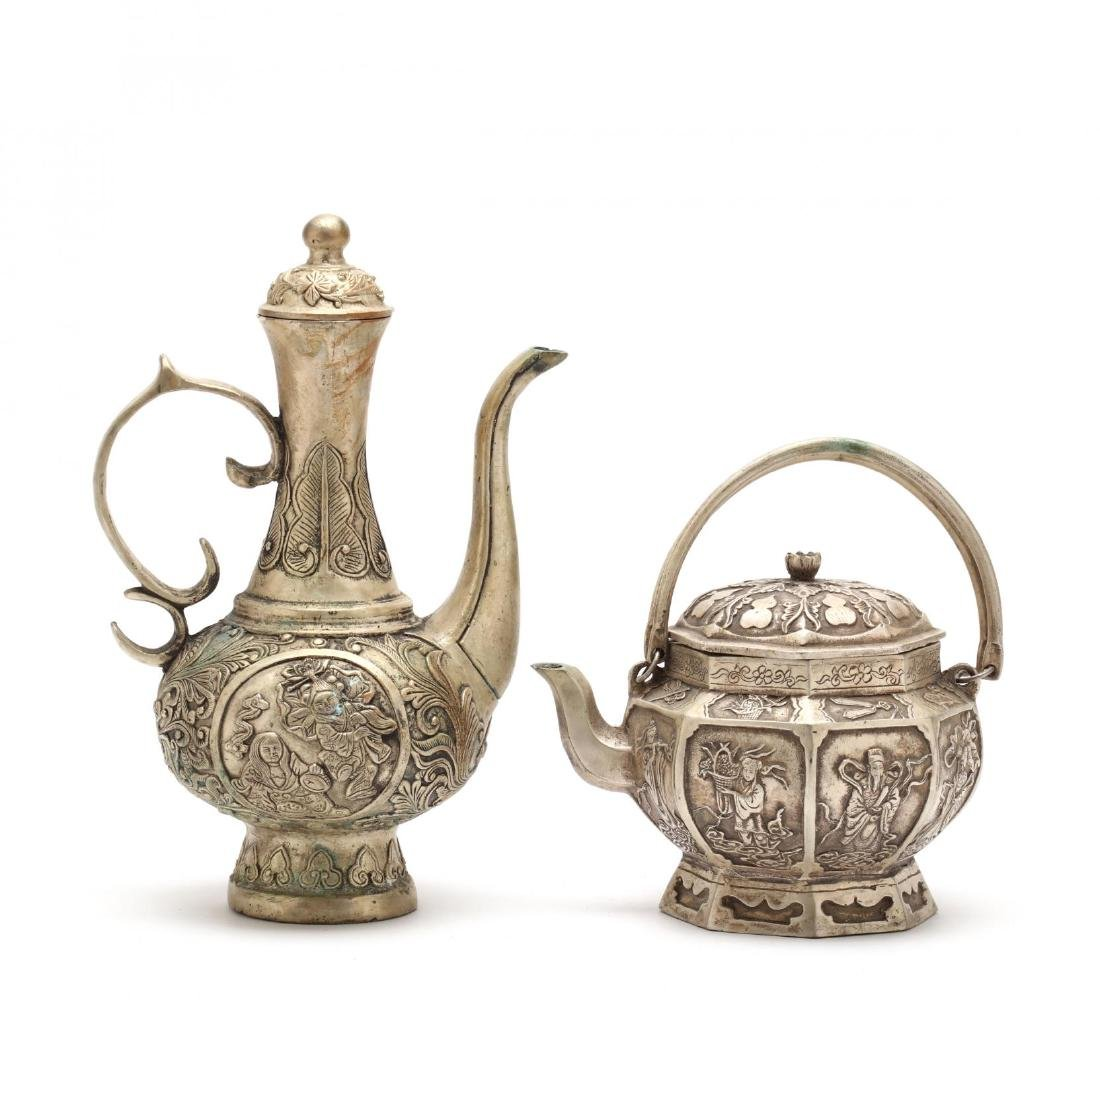 Two Chinese White Metal Wine Pots